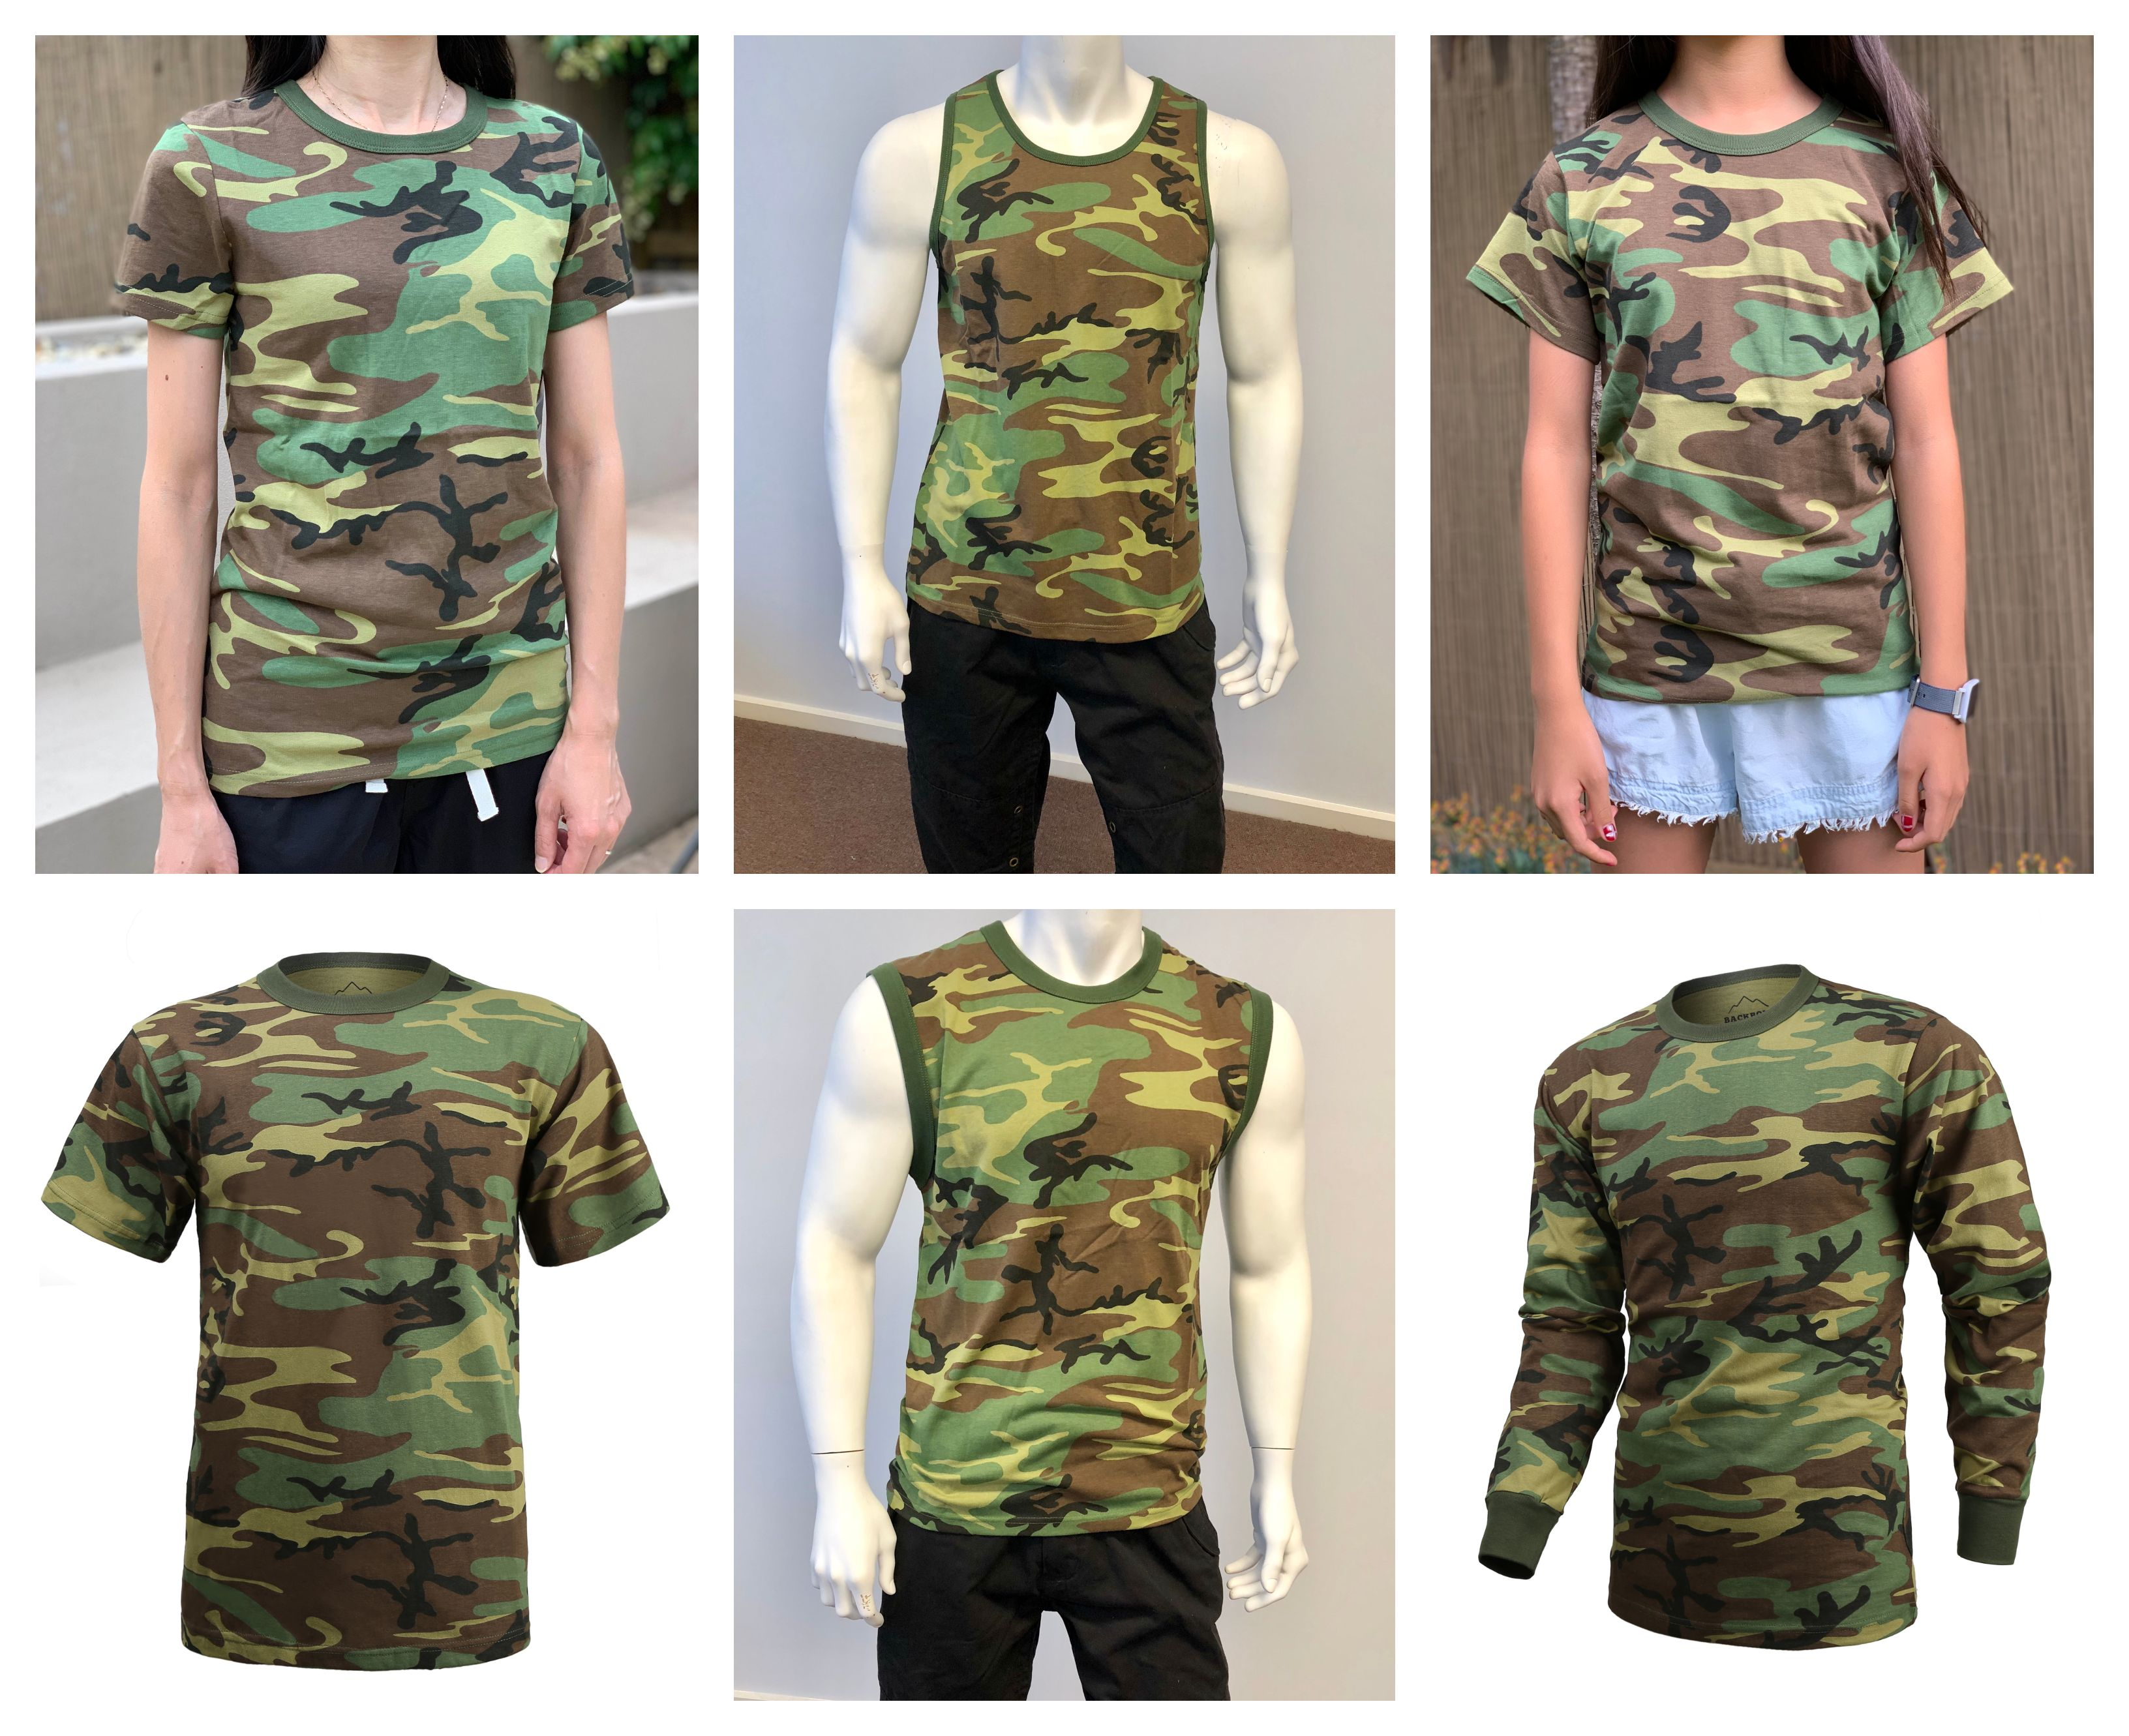 Boys Girls Kids Teens Army Military Training Scout Camp Outdoor Camo T-Shirt Tee